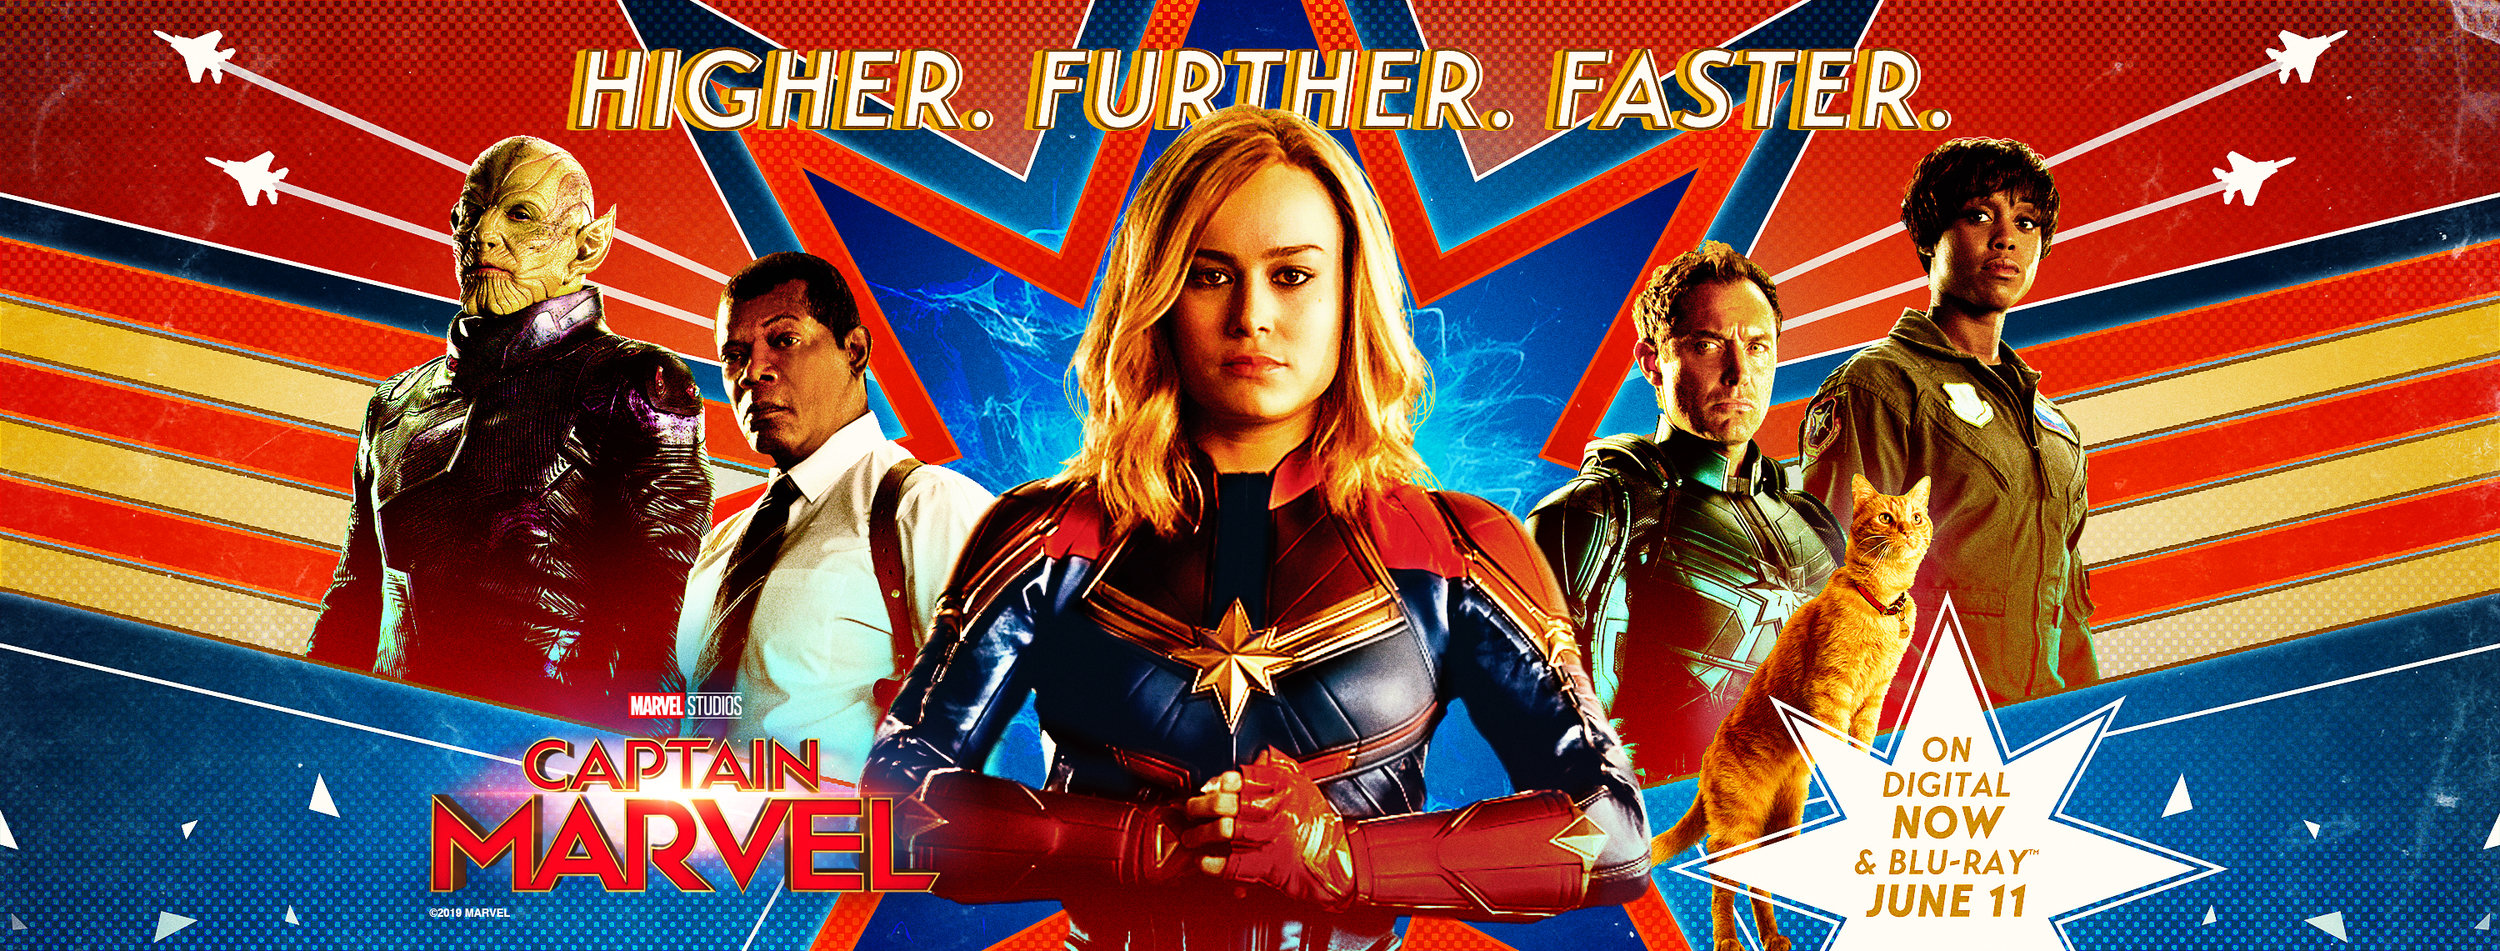 Captain Marvel_FB Cover Static_Final.jpg